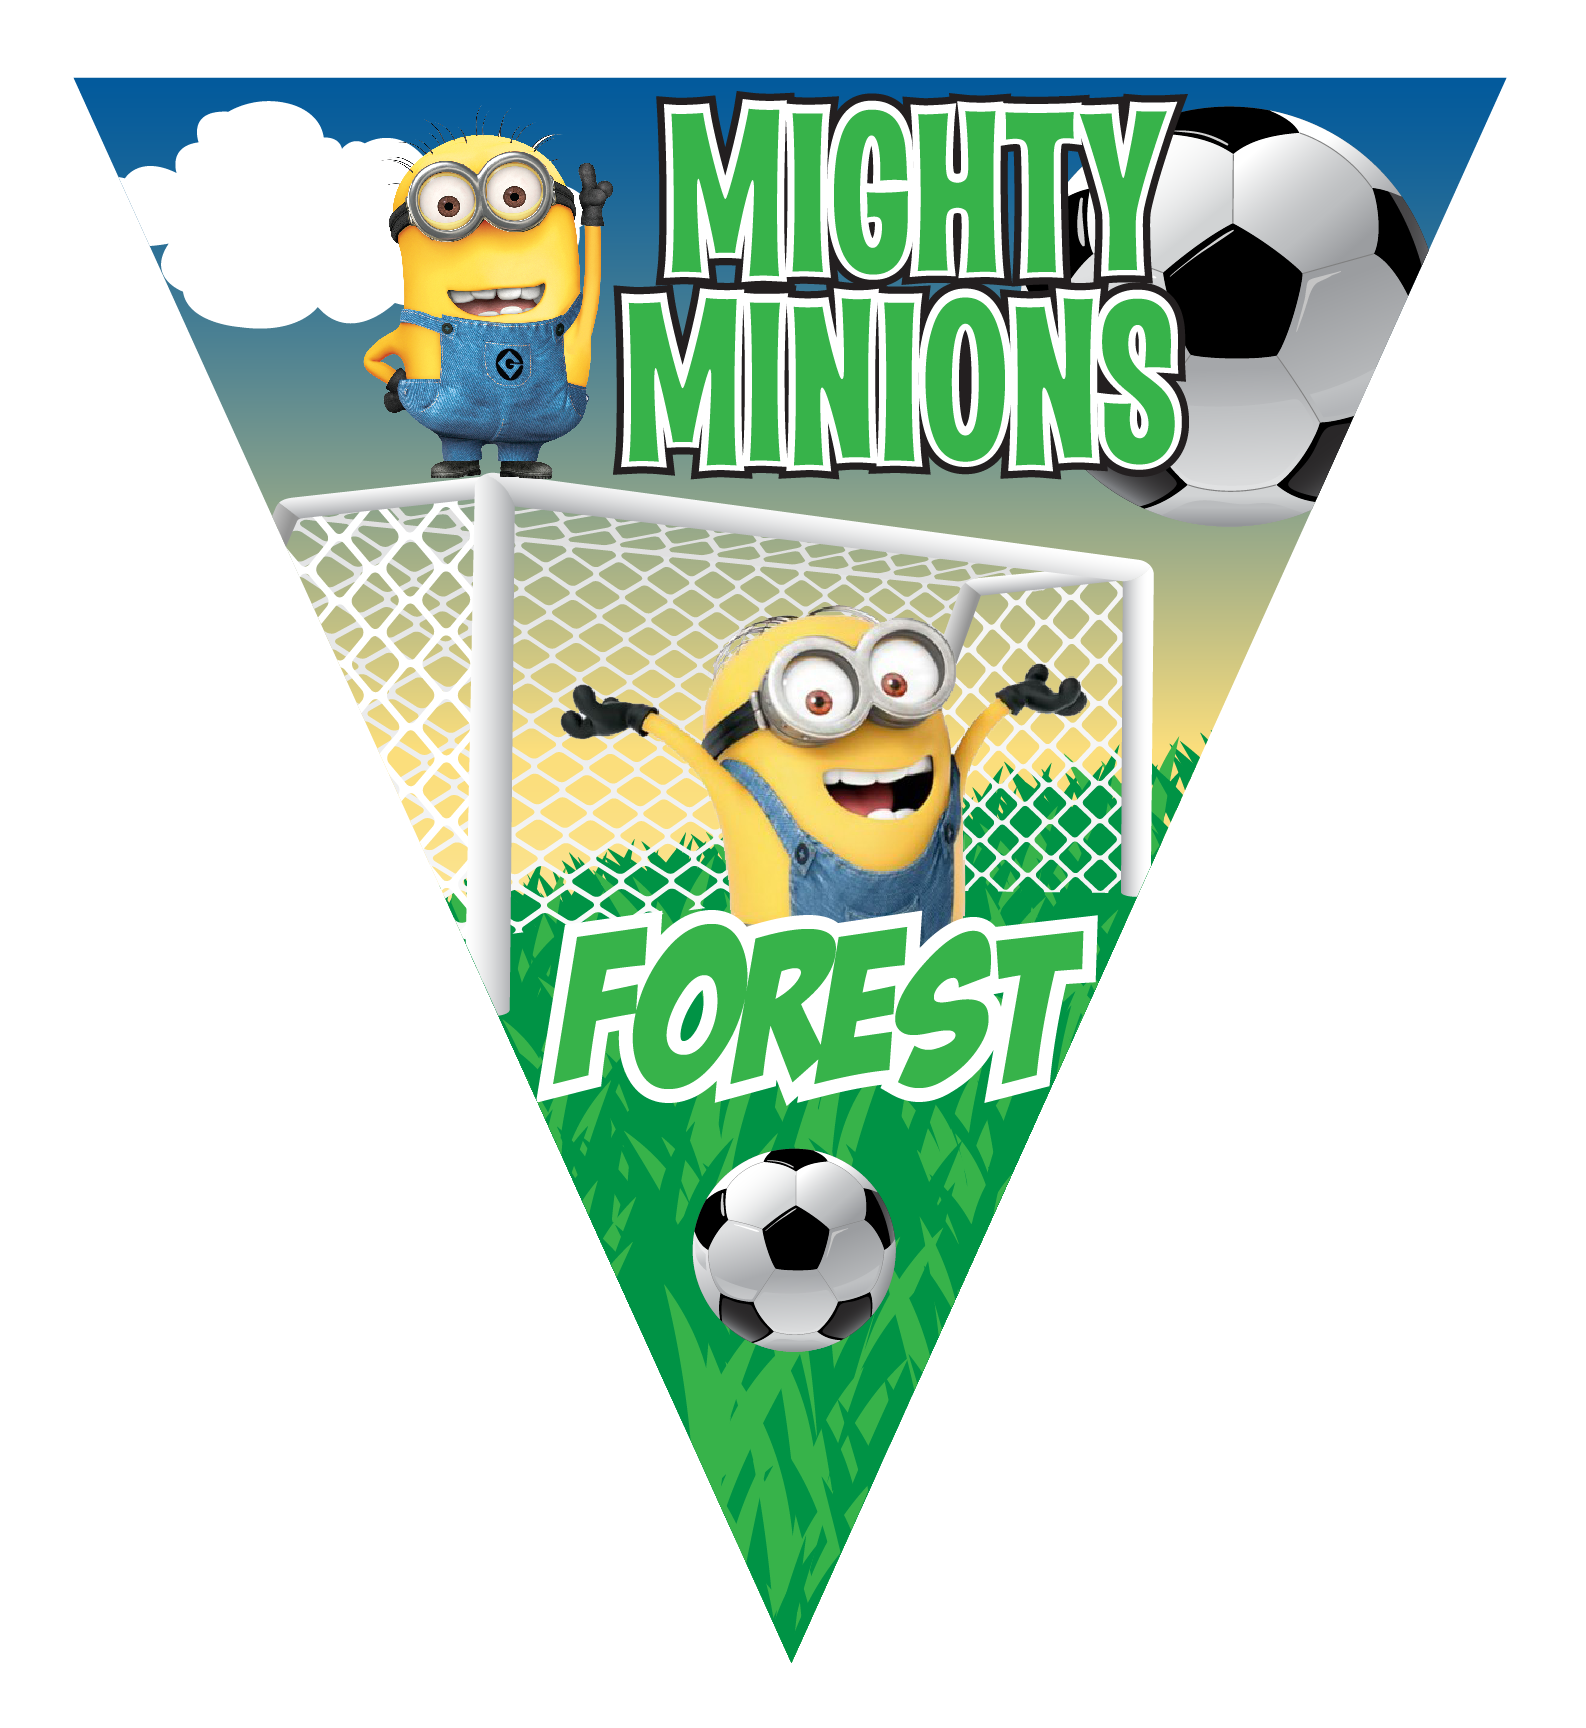 Baseball pennant clipart jpg black and white stock Mighty Minions Triangle Individual Team Pennant - Custom Triangle ... jpg black and white stock